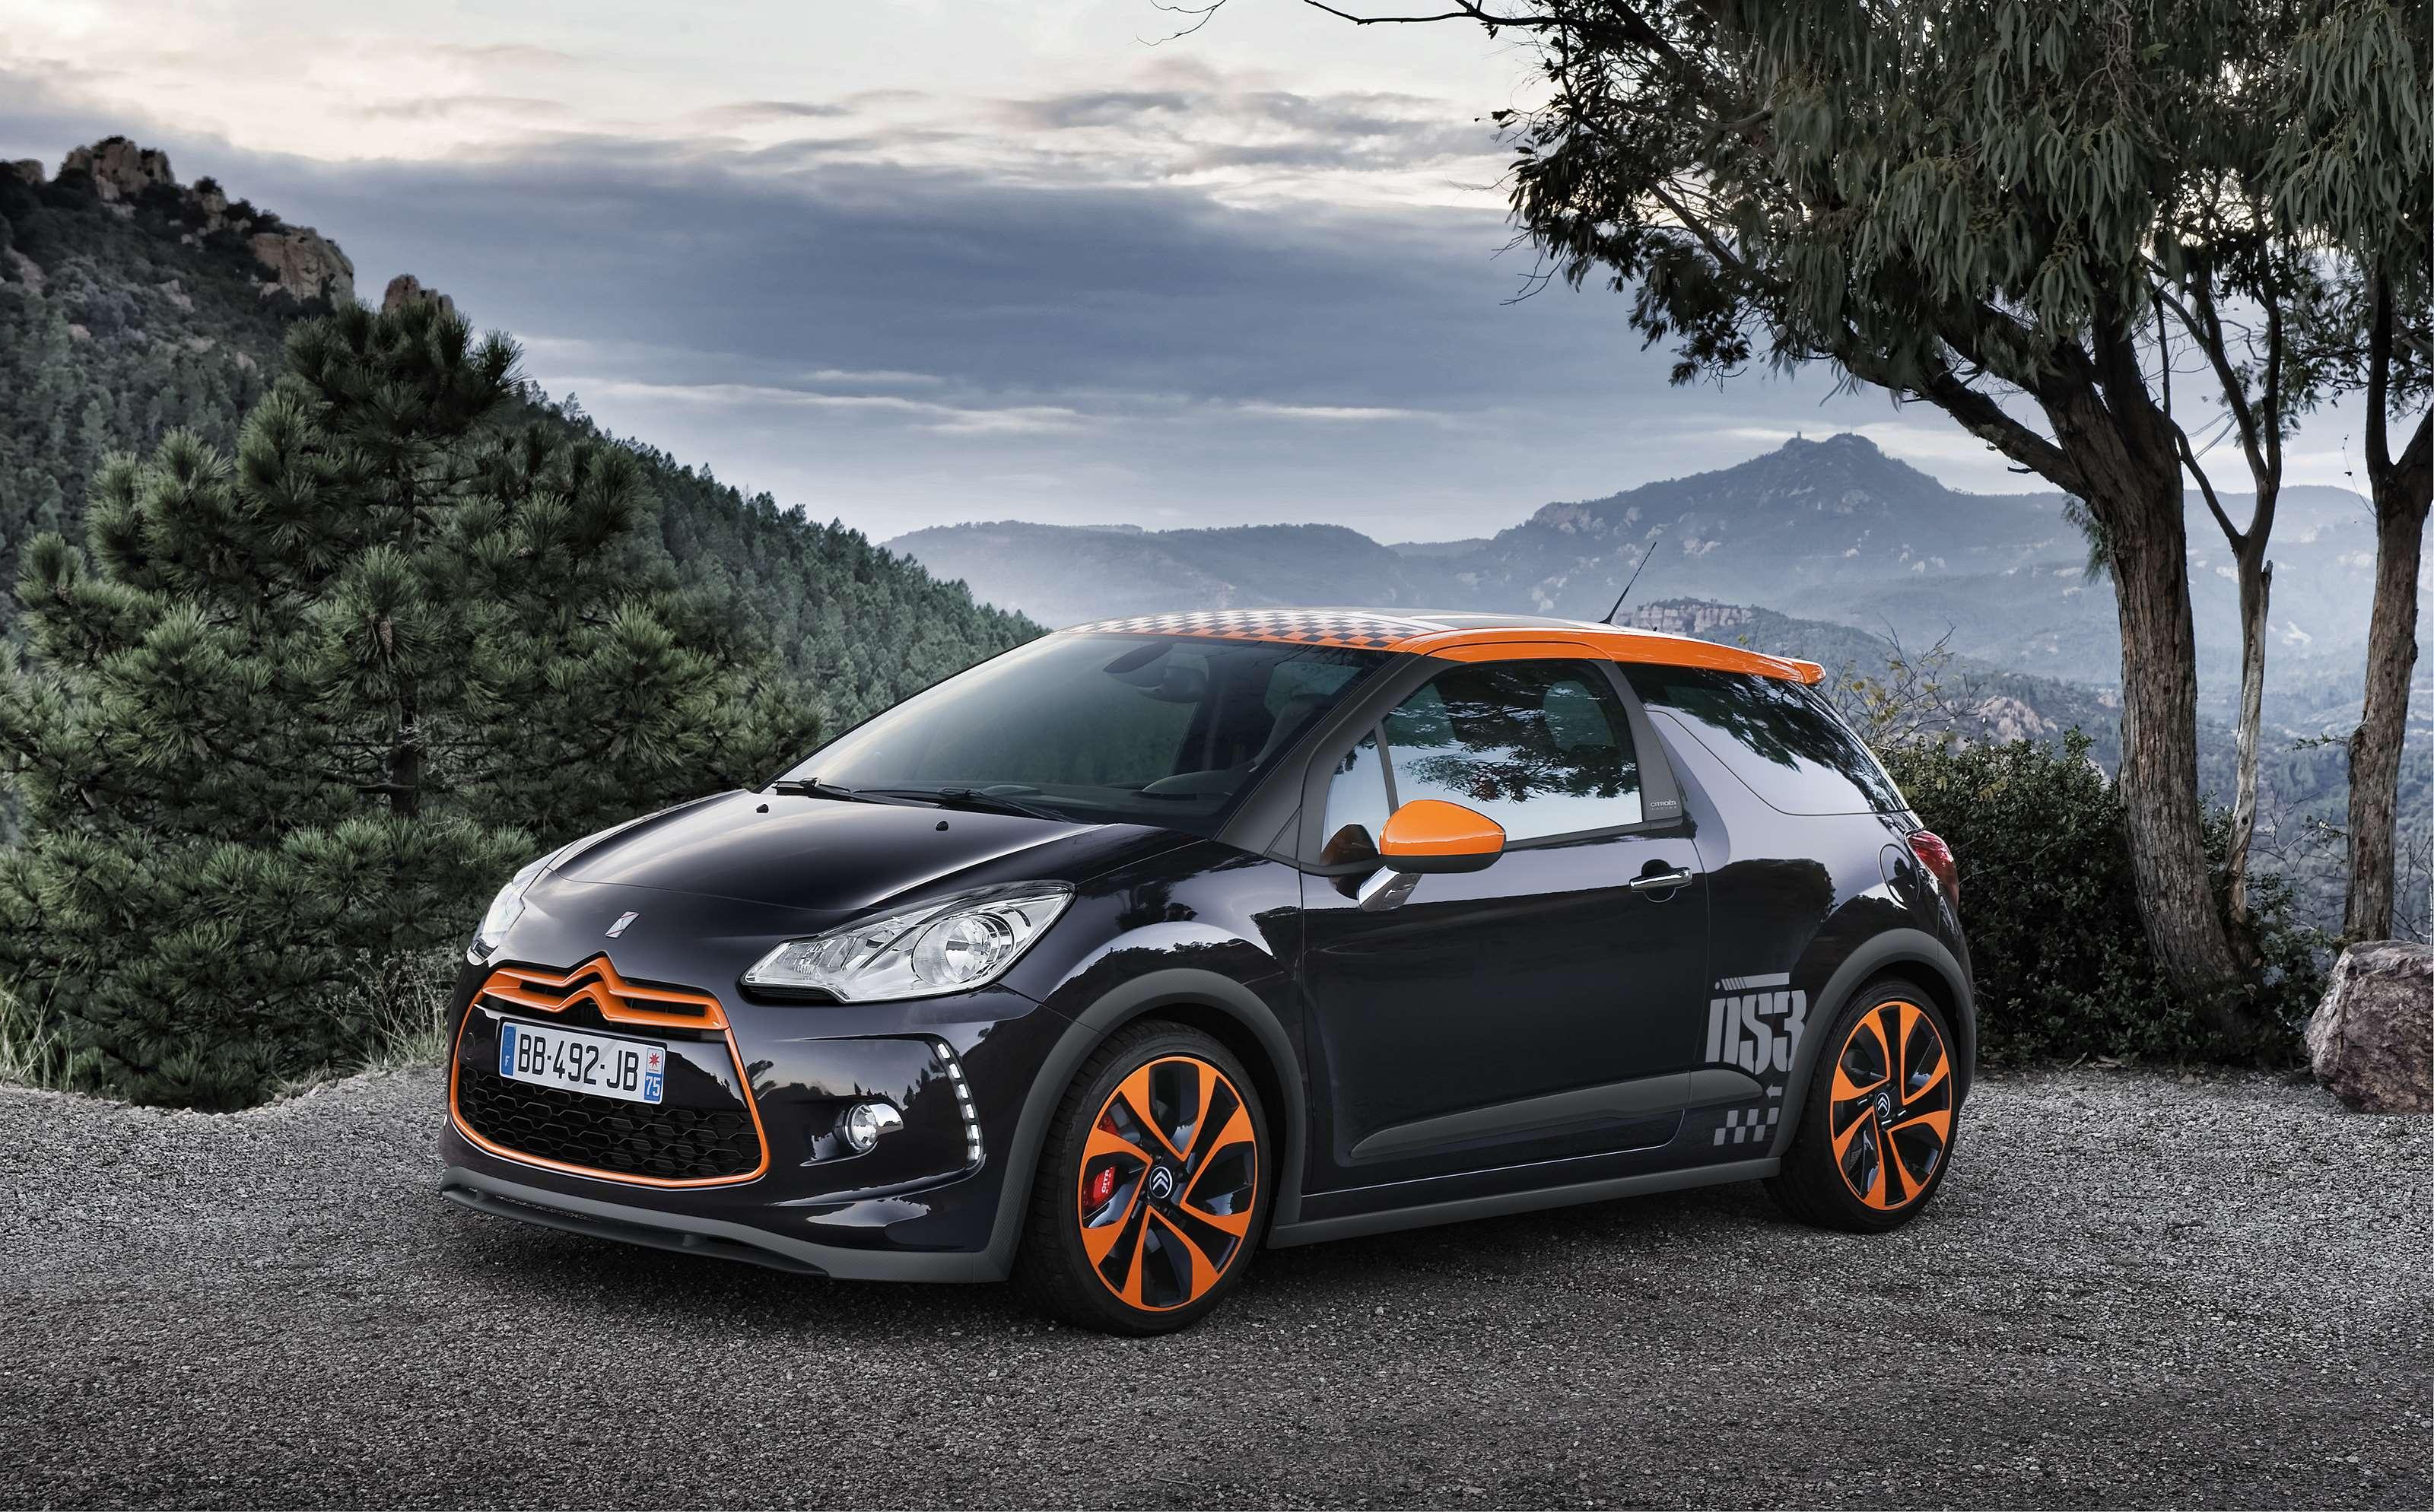 citroen ds3 racing launched scoop news. Black Bedroom Furniture Sets. Home Design Ideas